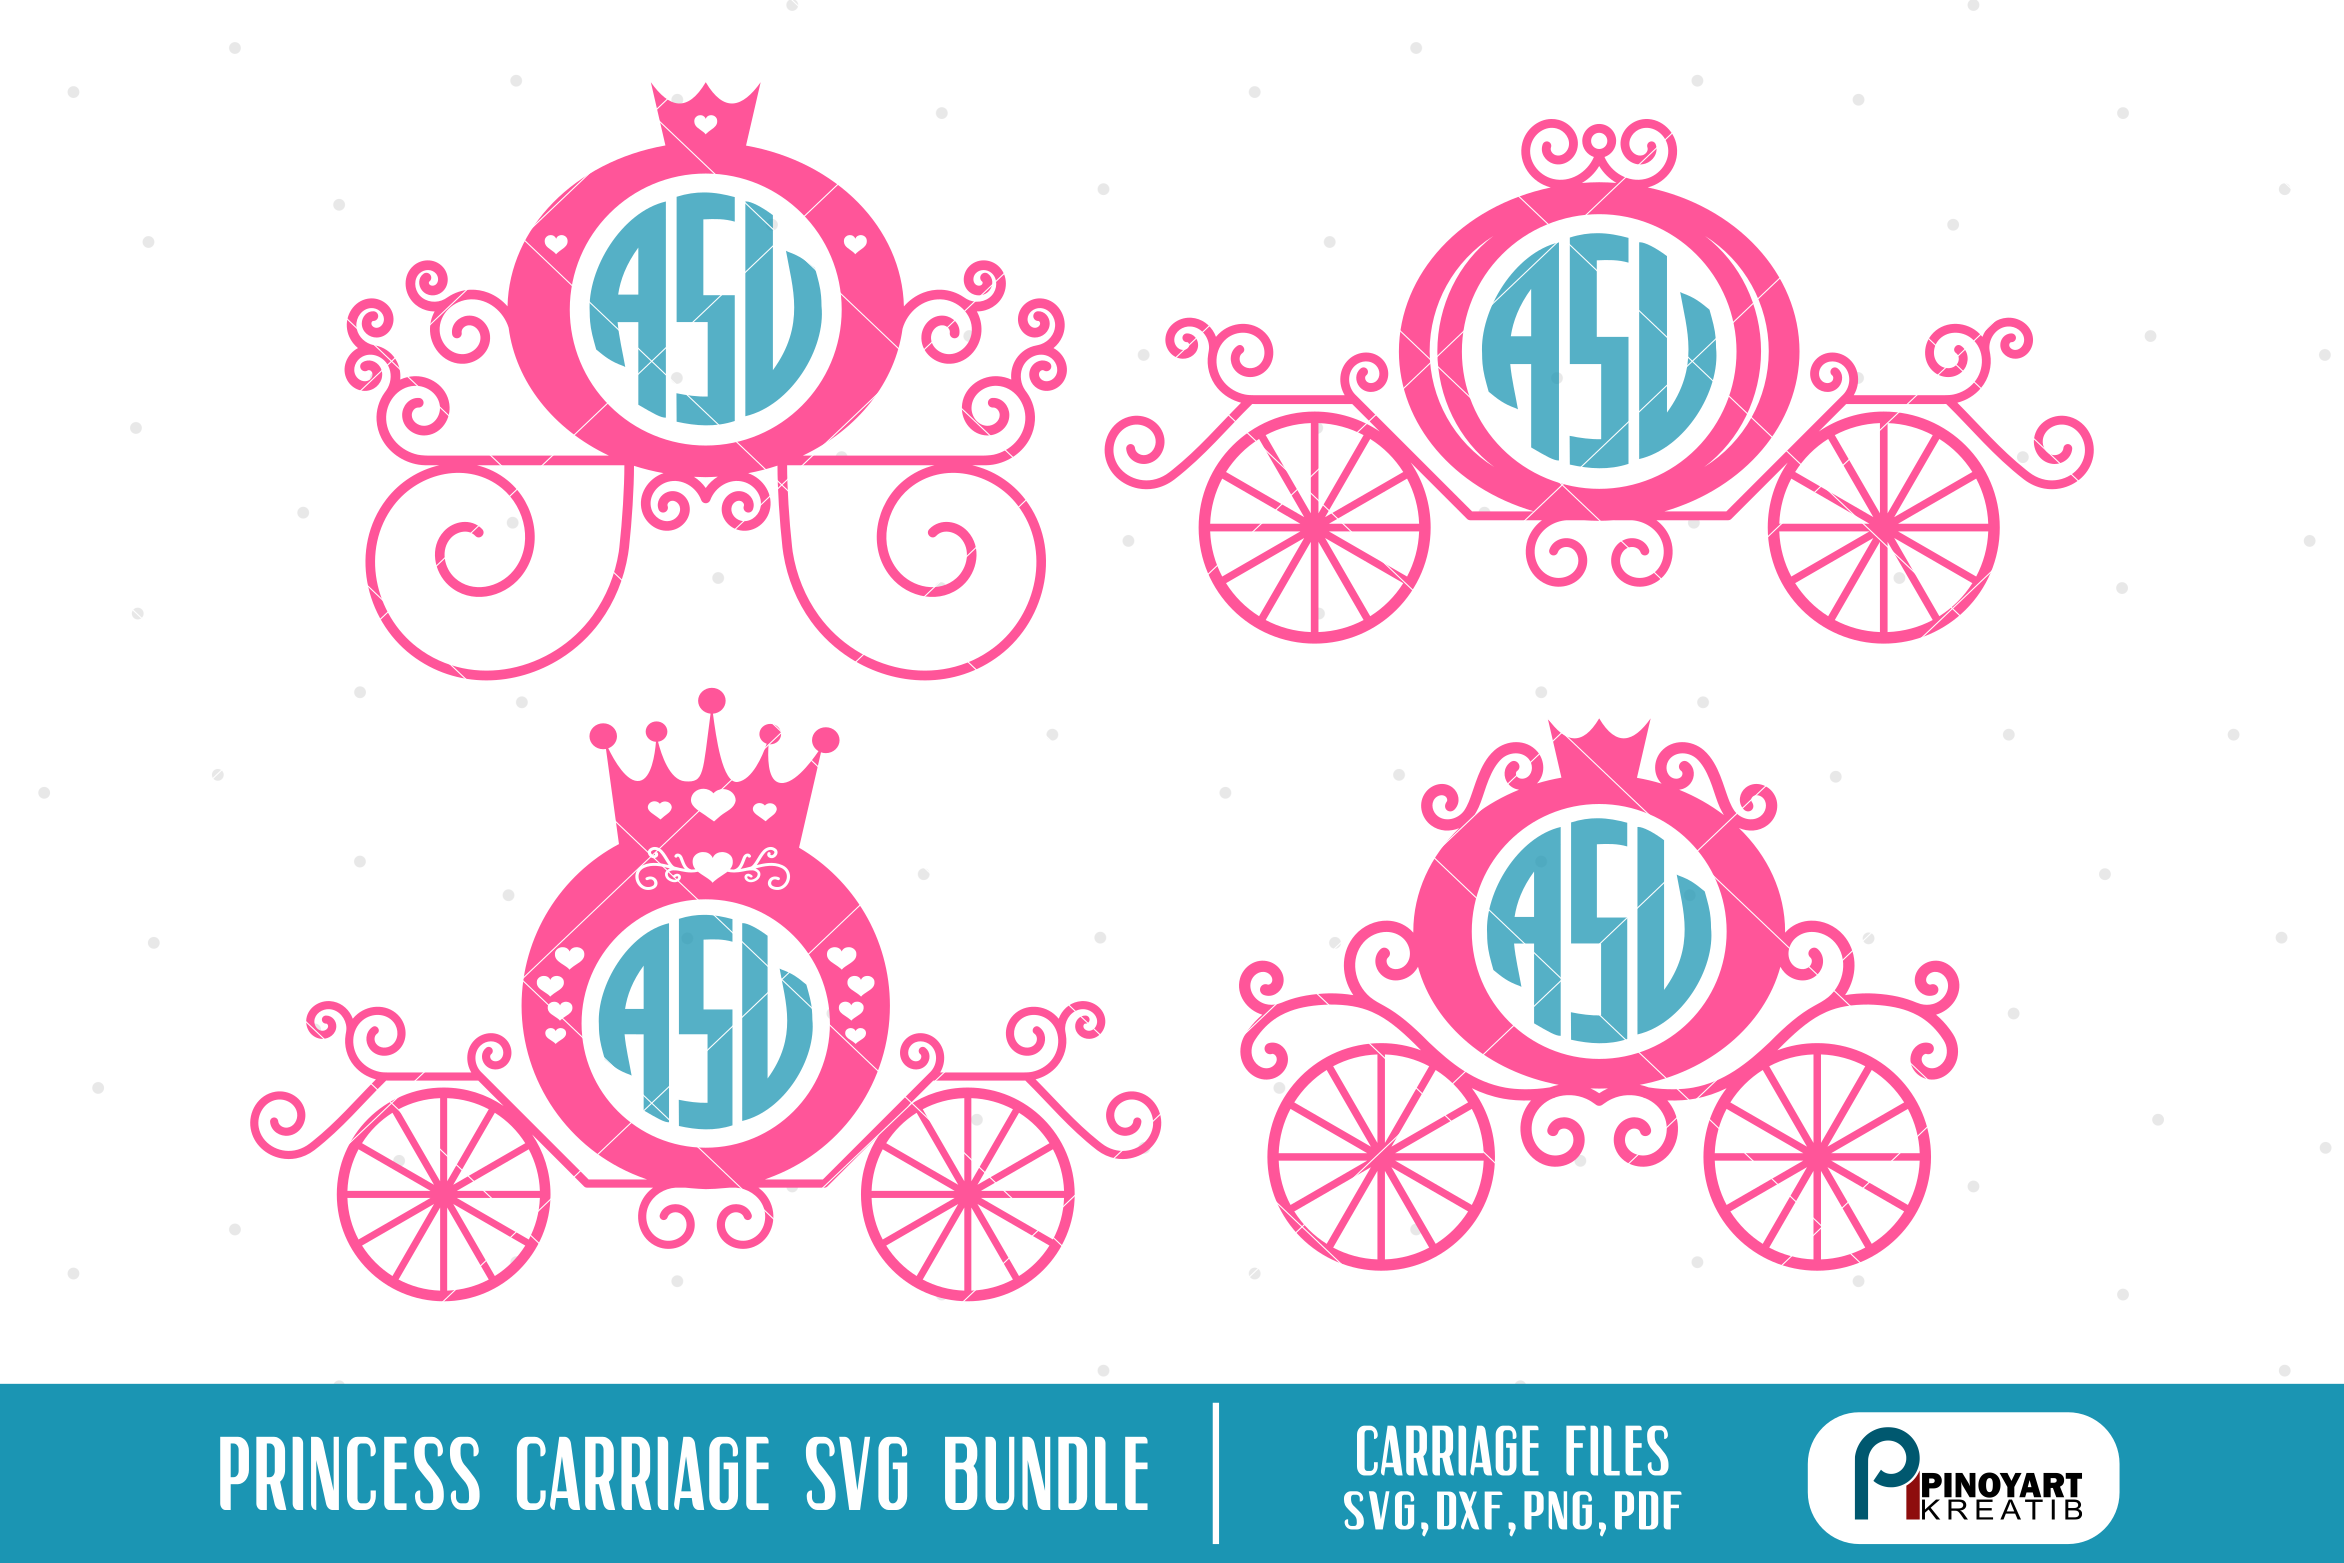 Download Free Princess Carriage Bundle Graphic By Pinoyartkreatib Creative for Cricut Explore, Silhouette and other cutting machines.